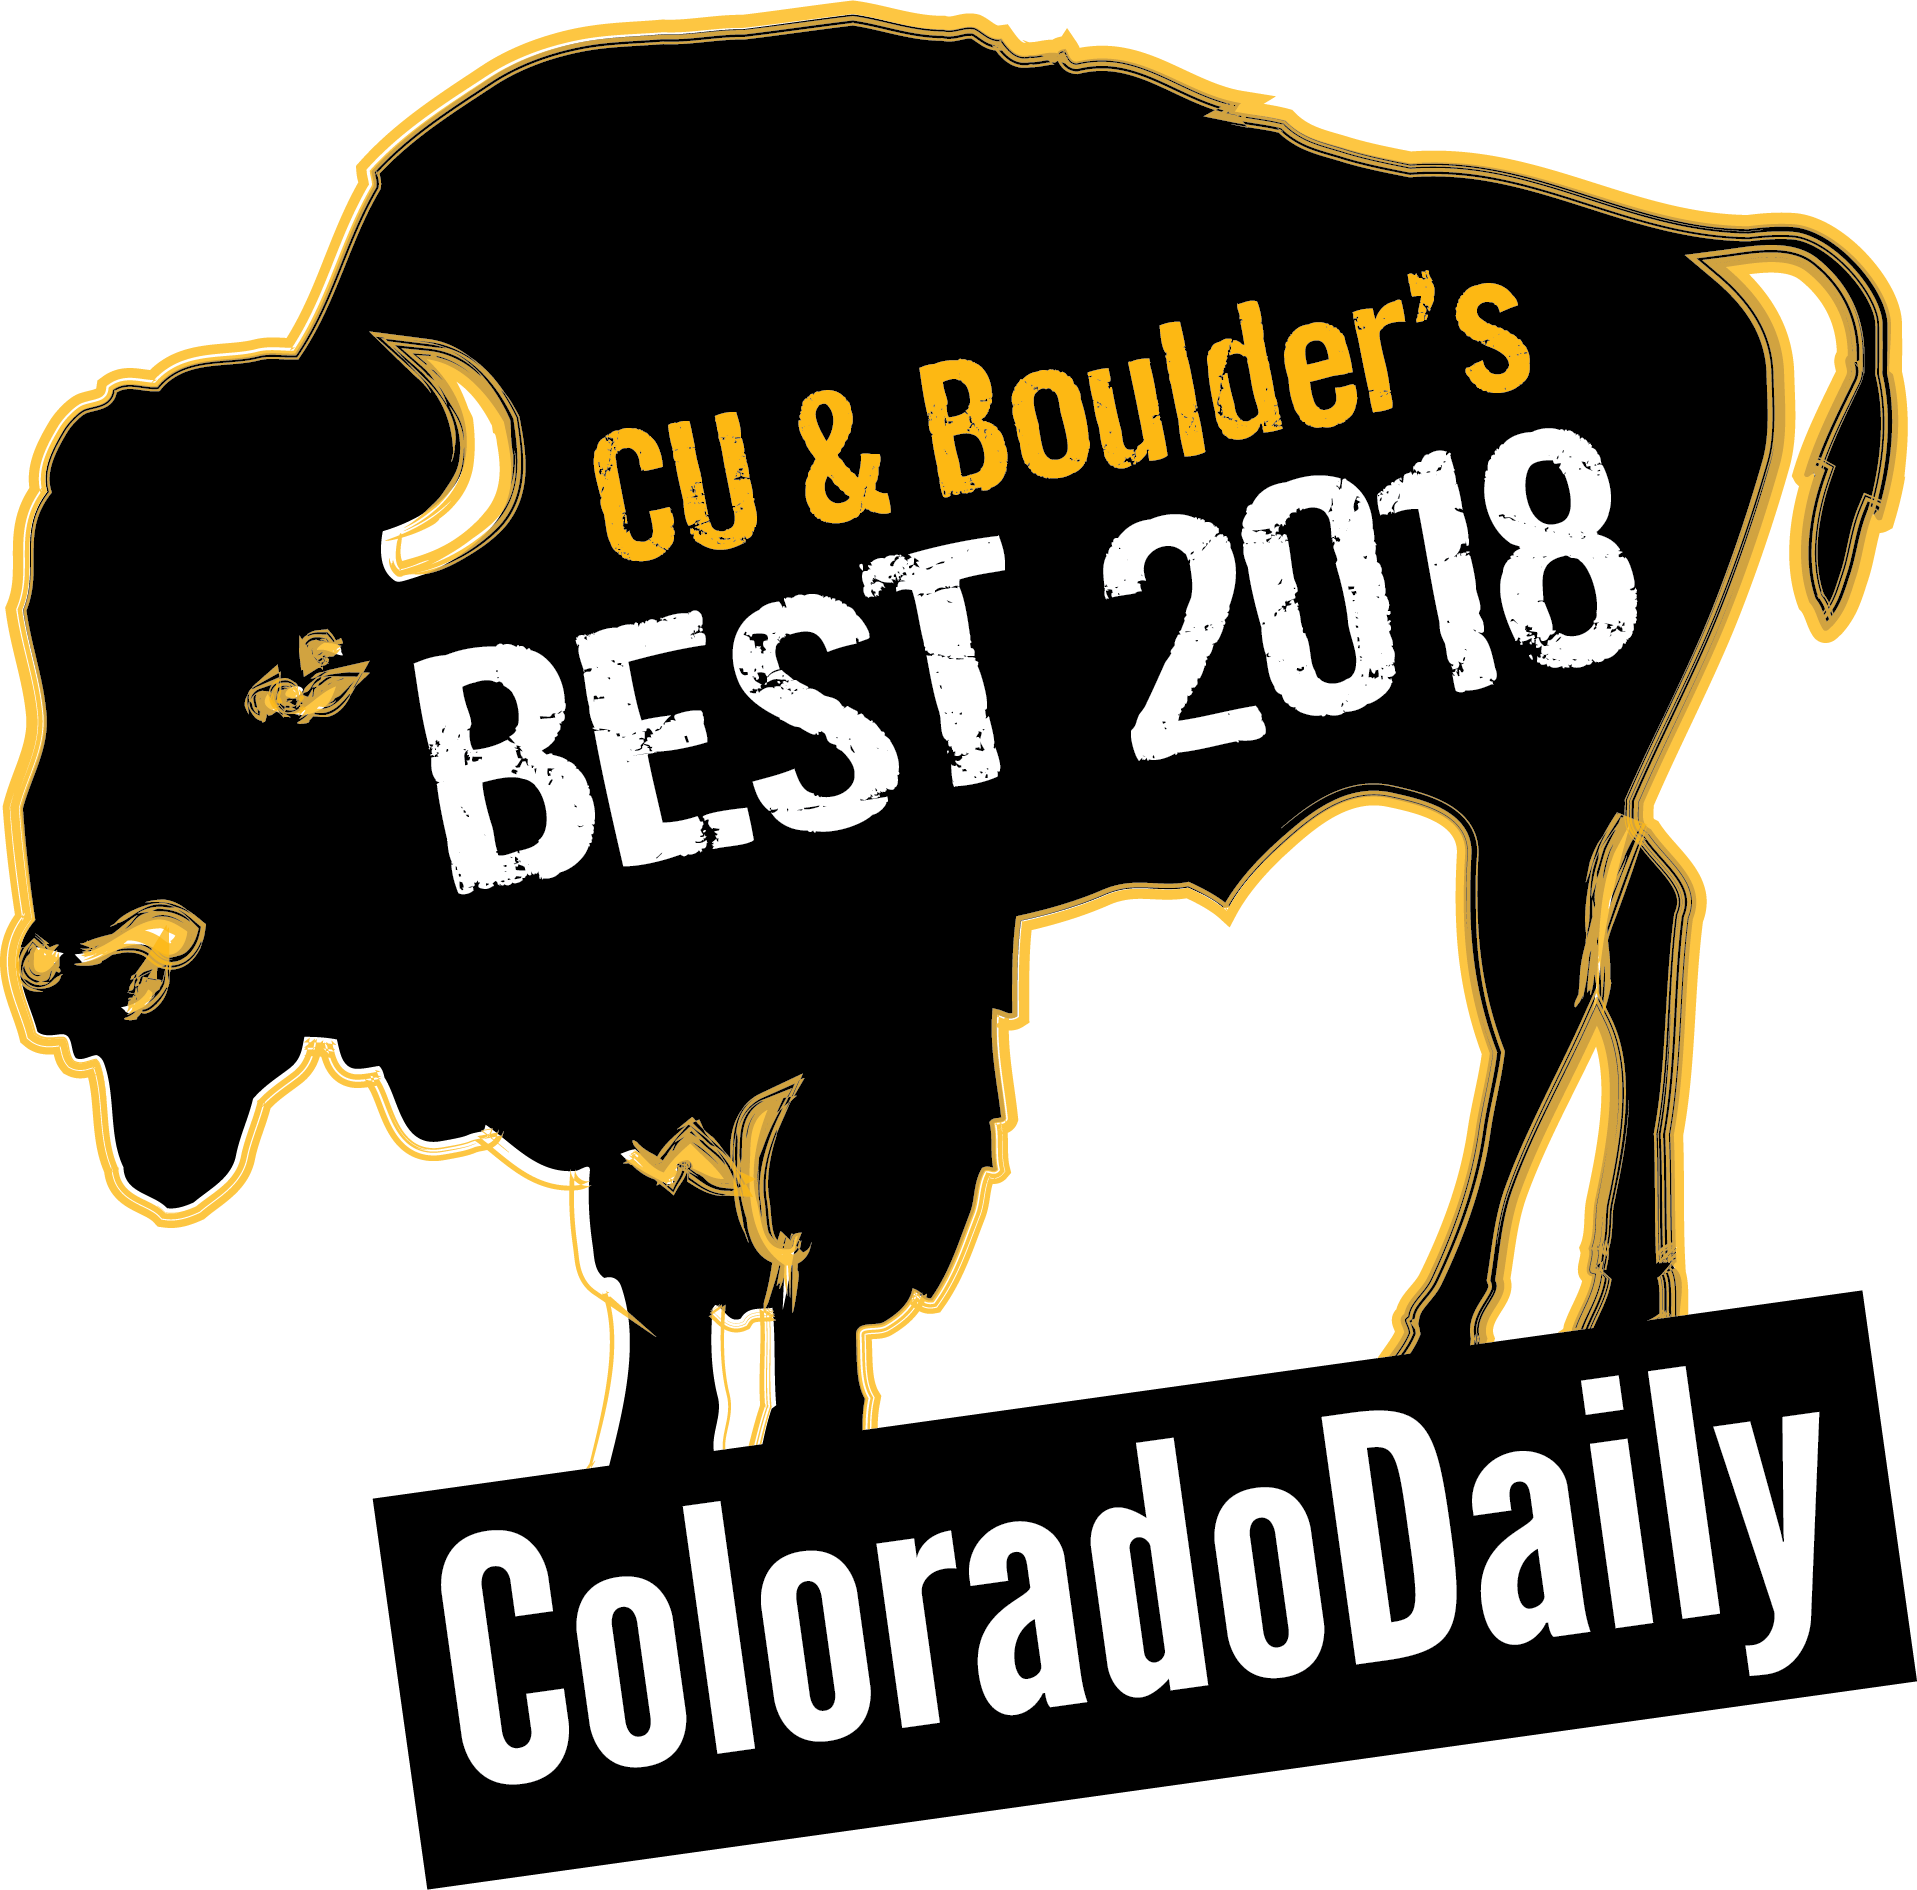 Best of Boulder award